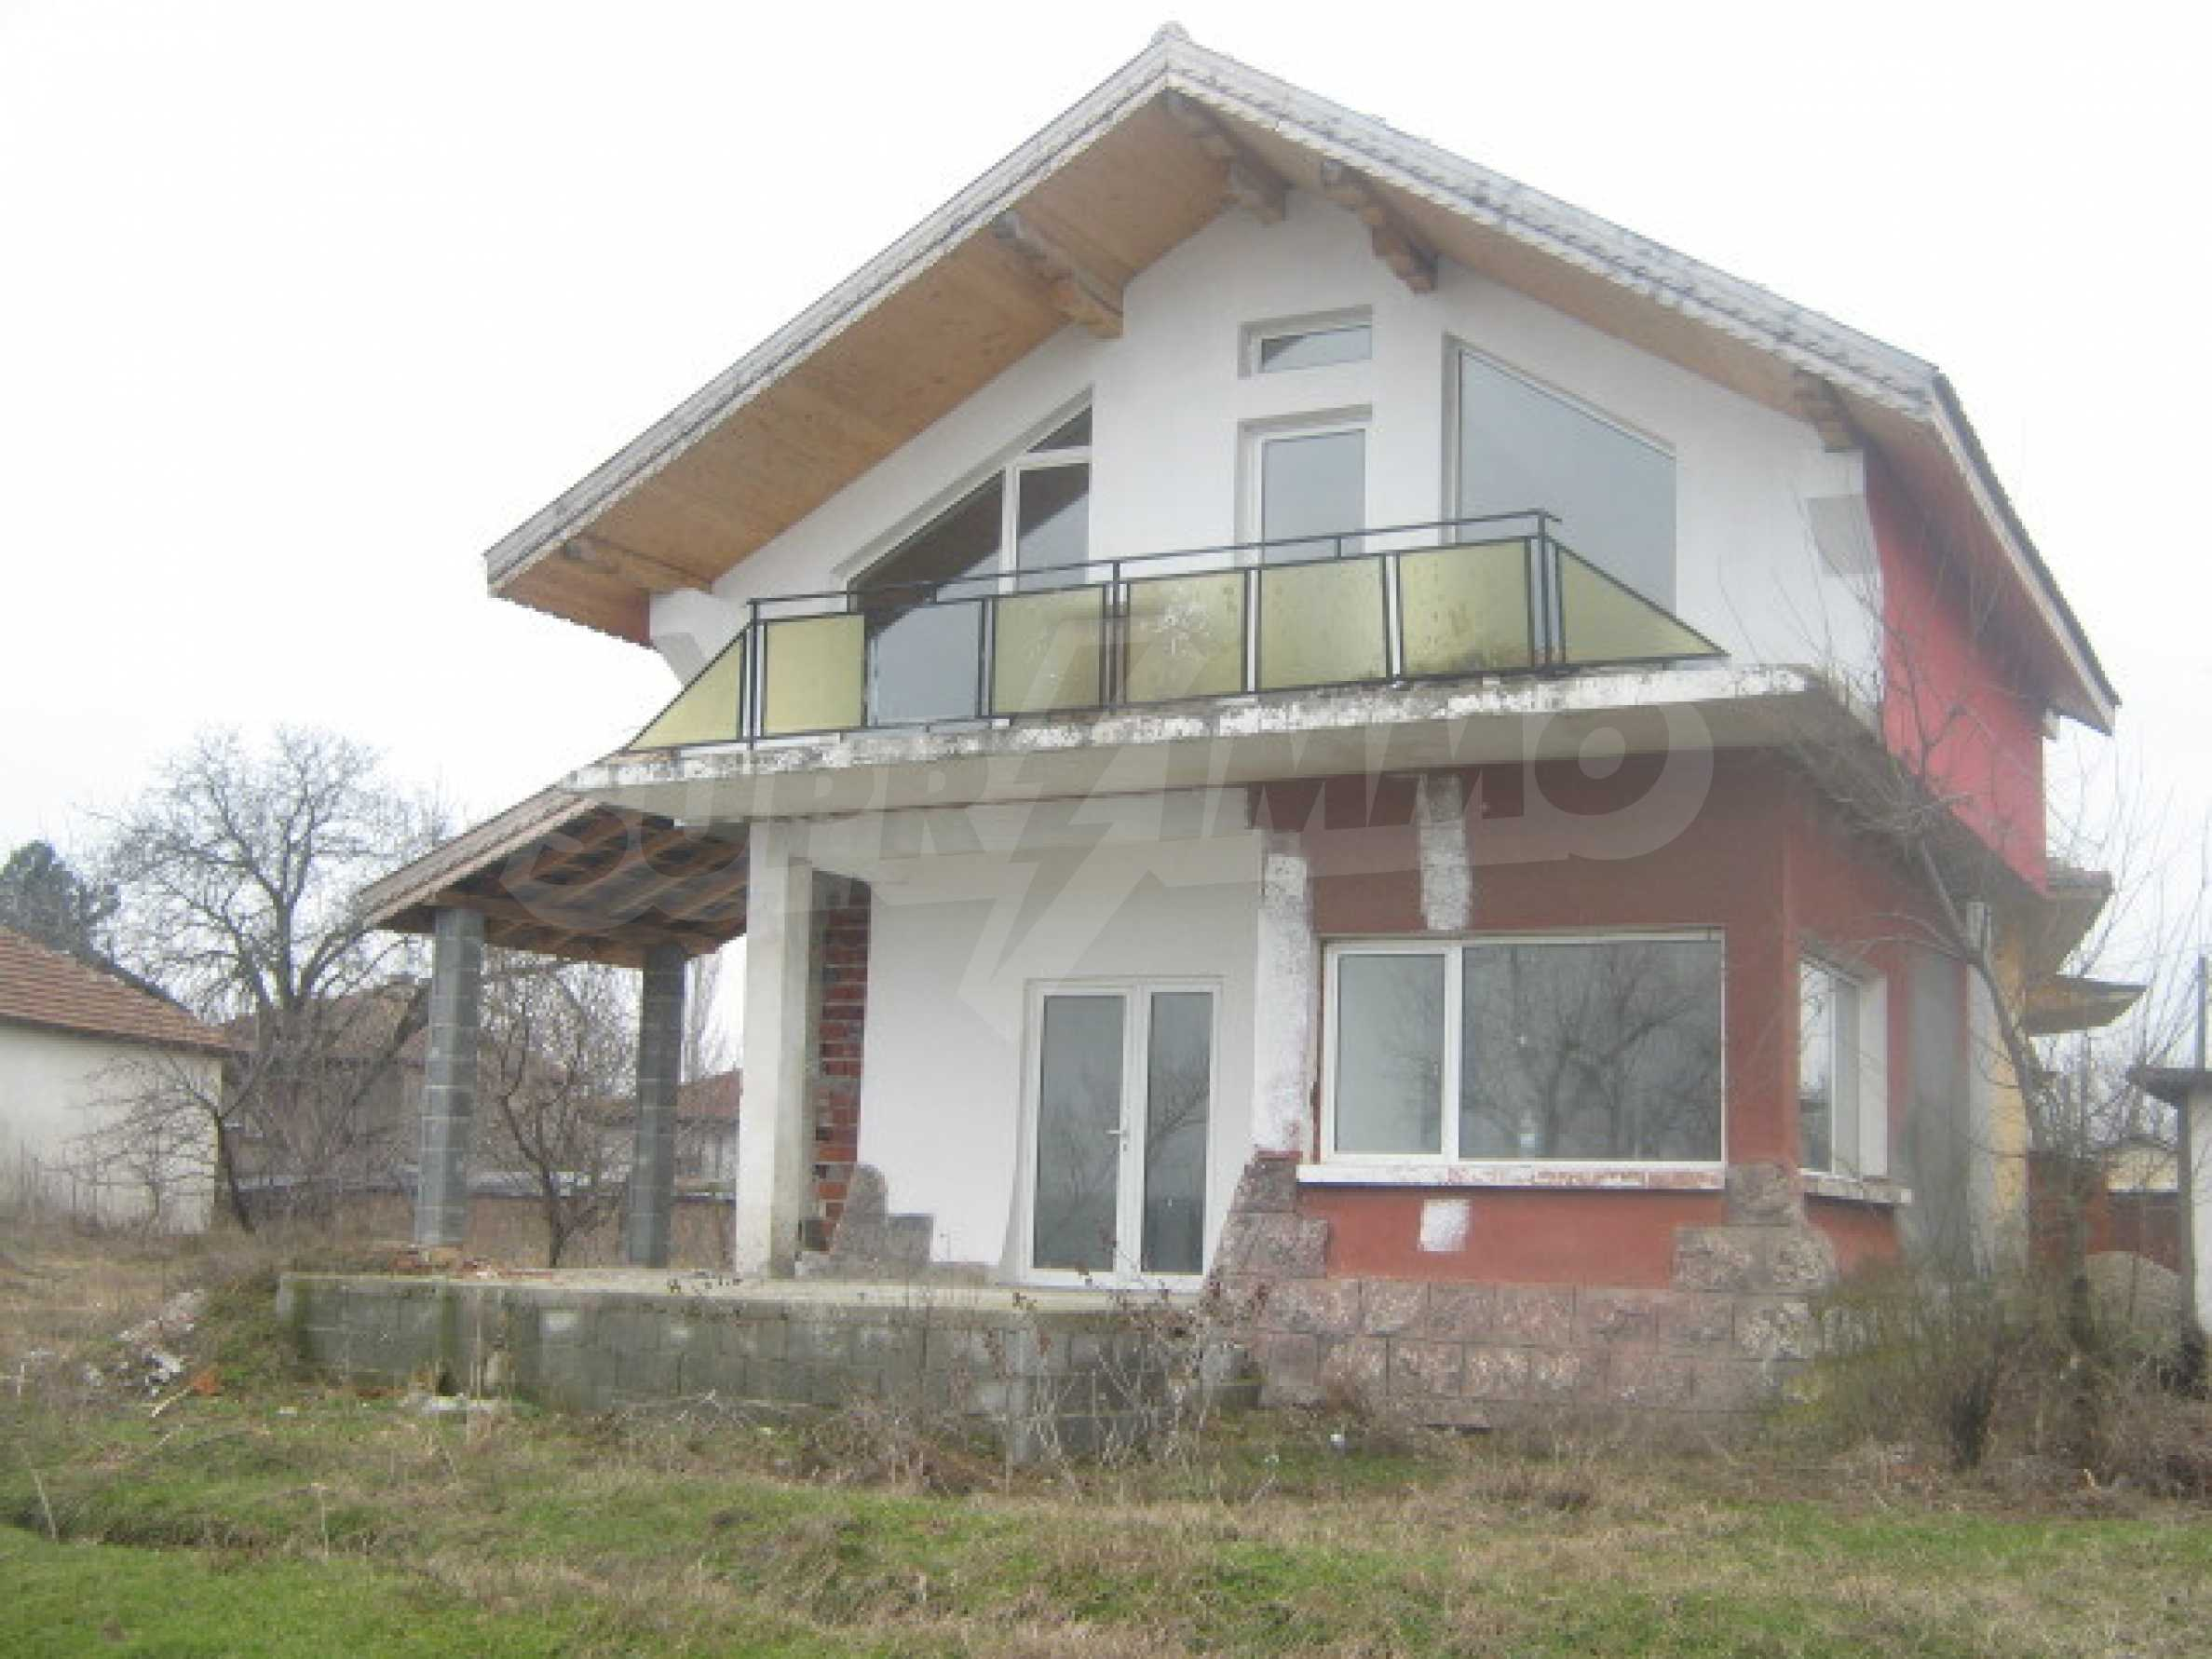 Appealing family villa in a beautiful village on the river bank 1